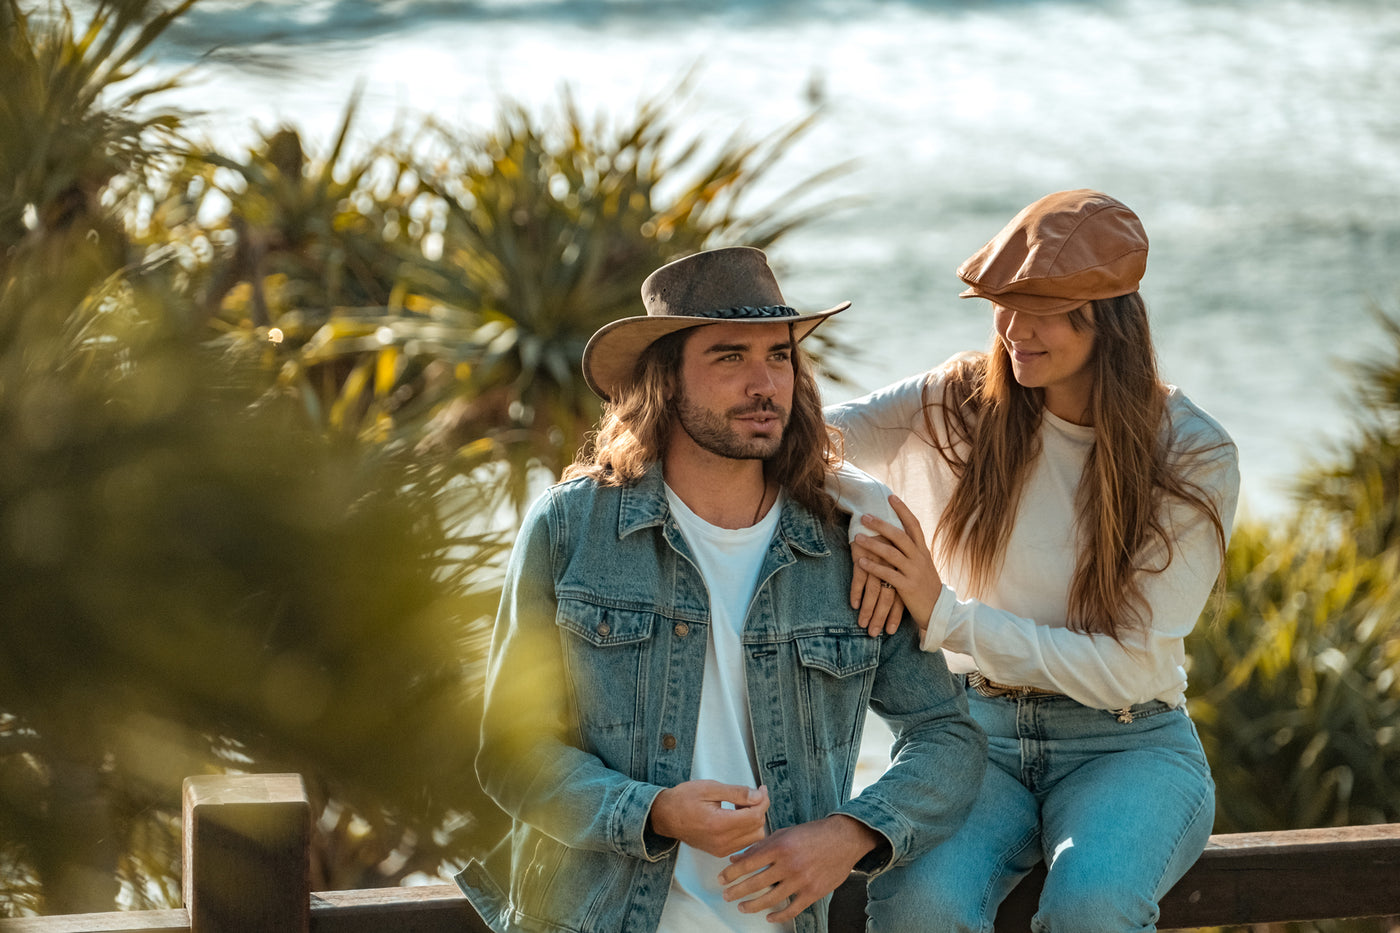 Jacaru Kangaroo Leather Hats Handmade in Australia